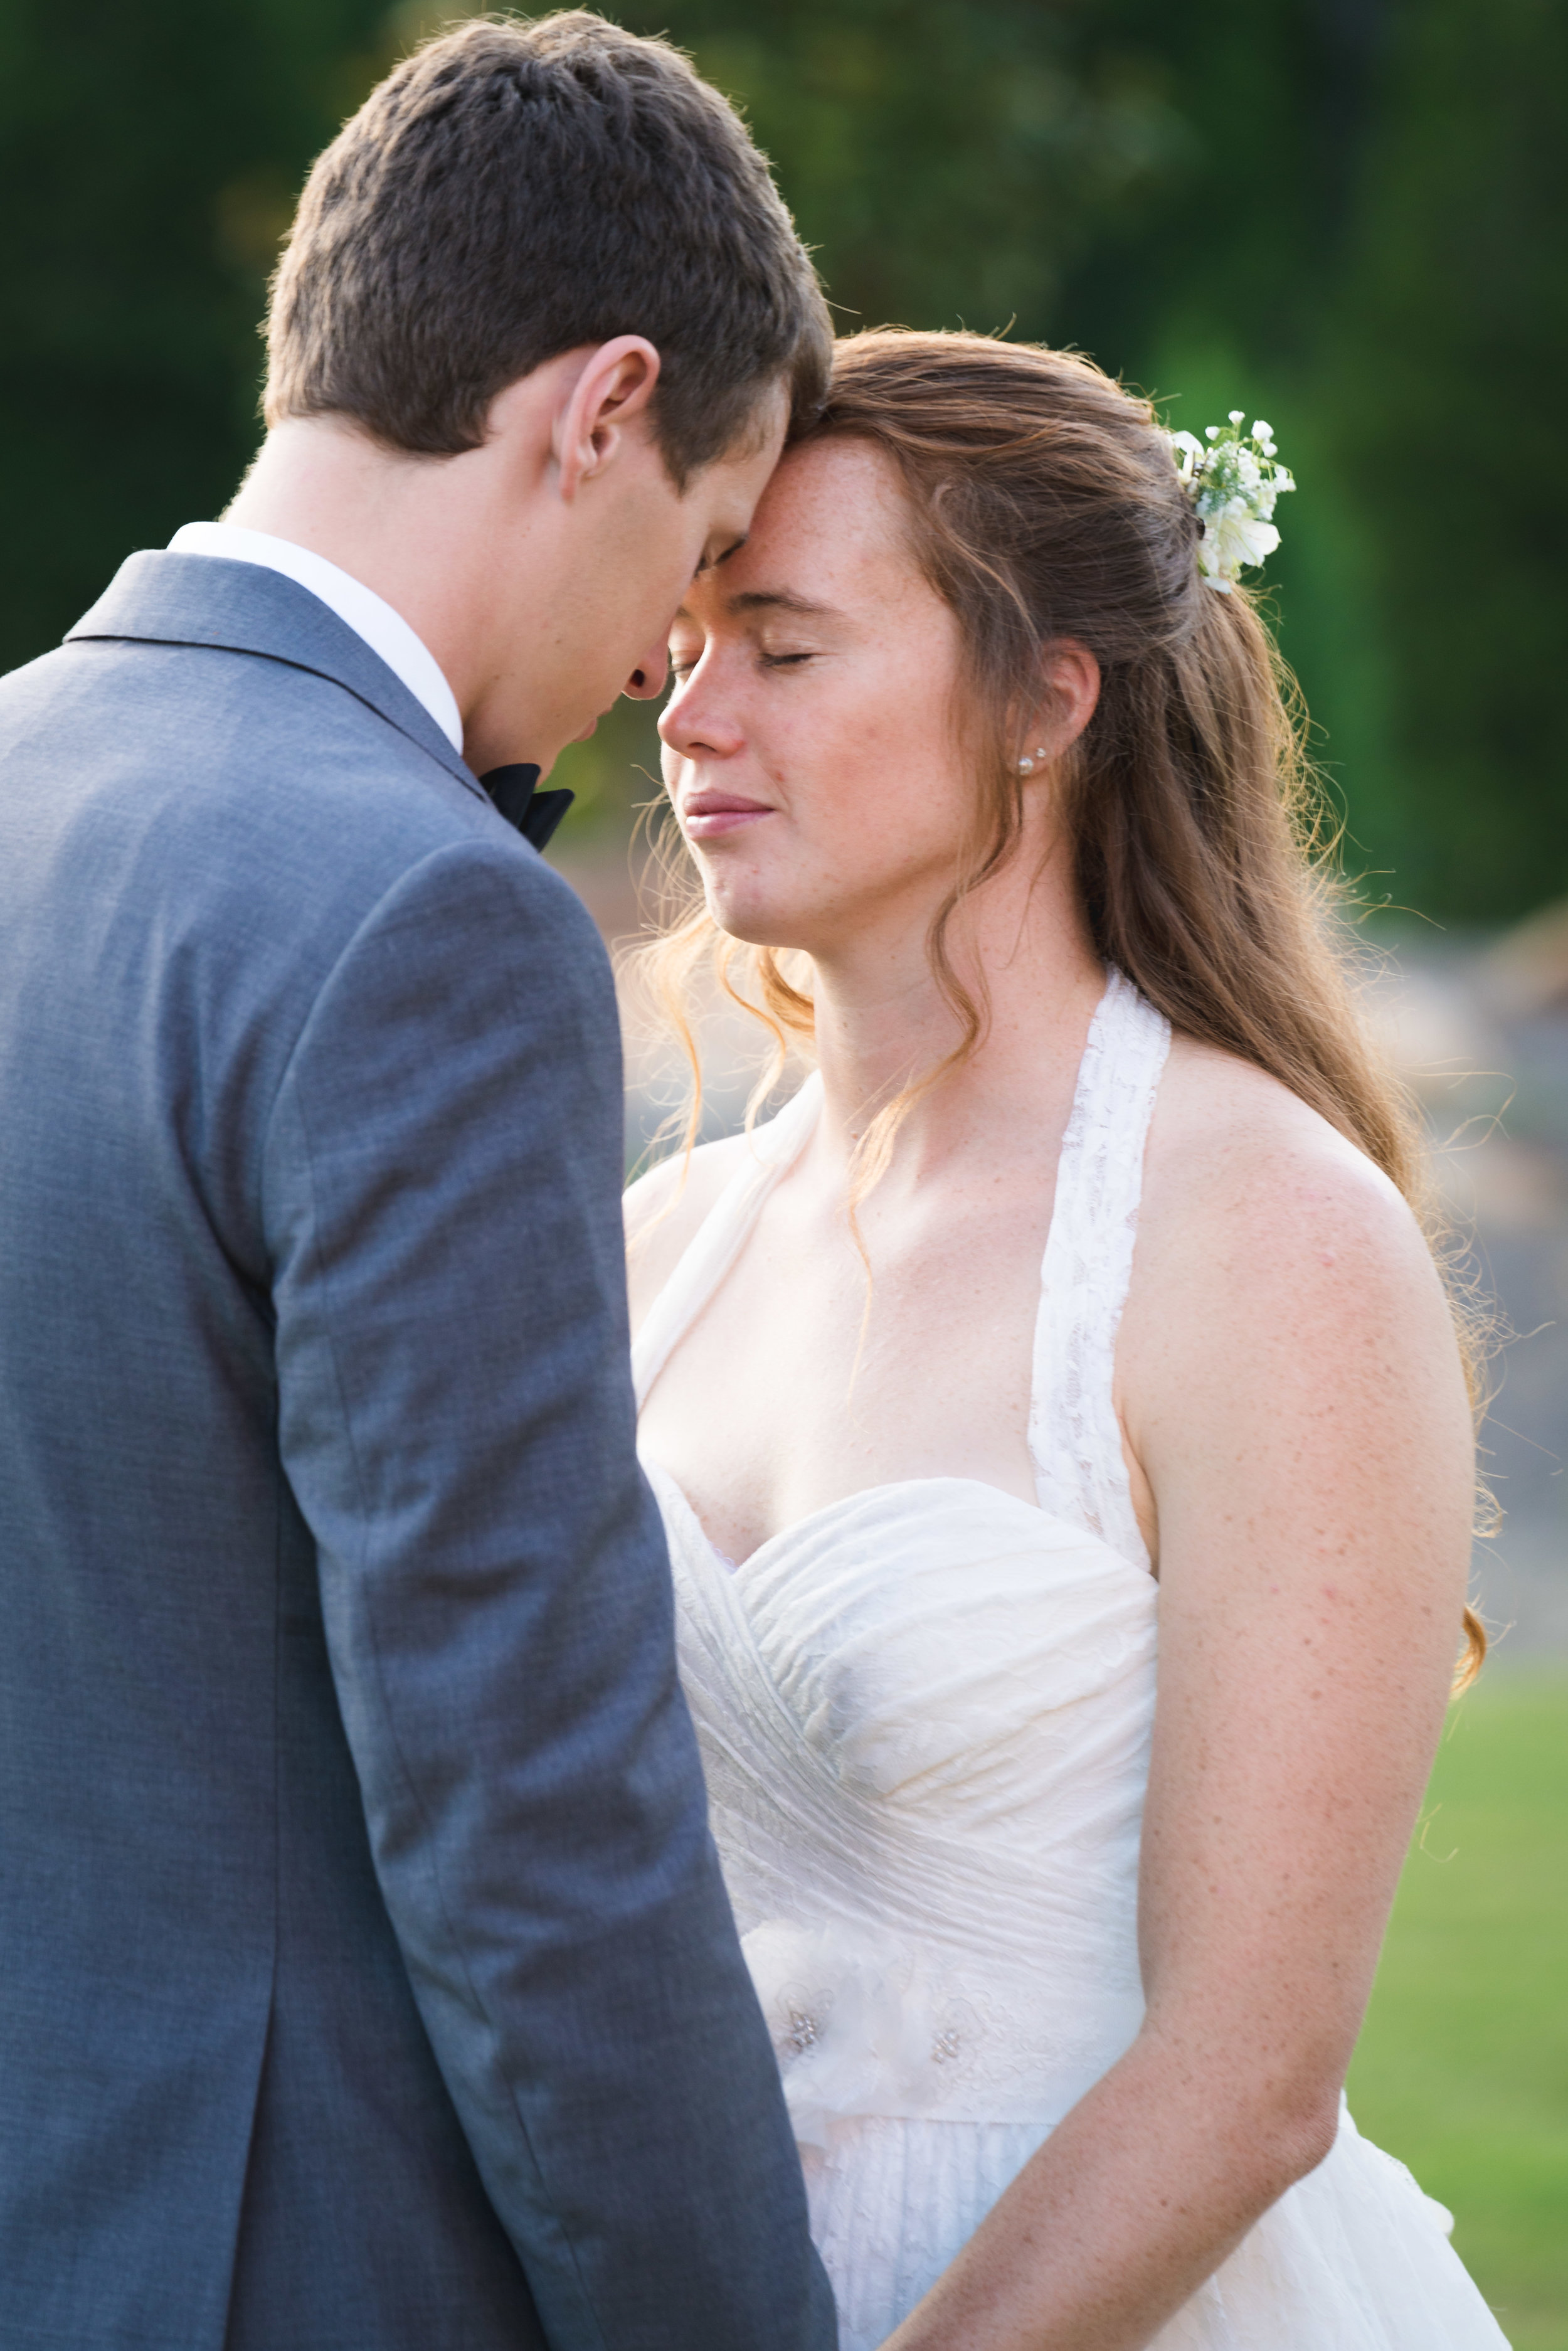 Bride and groom emotional moment | Windy Hill Wedding and Event Barn in Simpsonville, SC